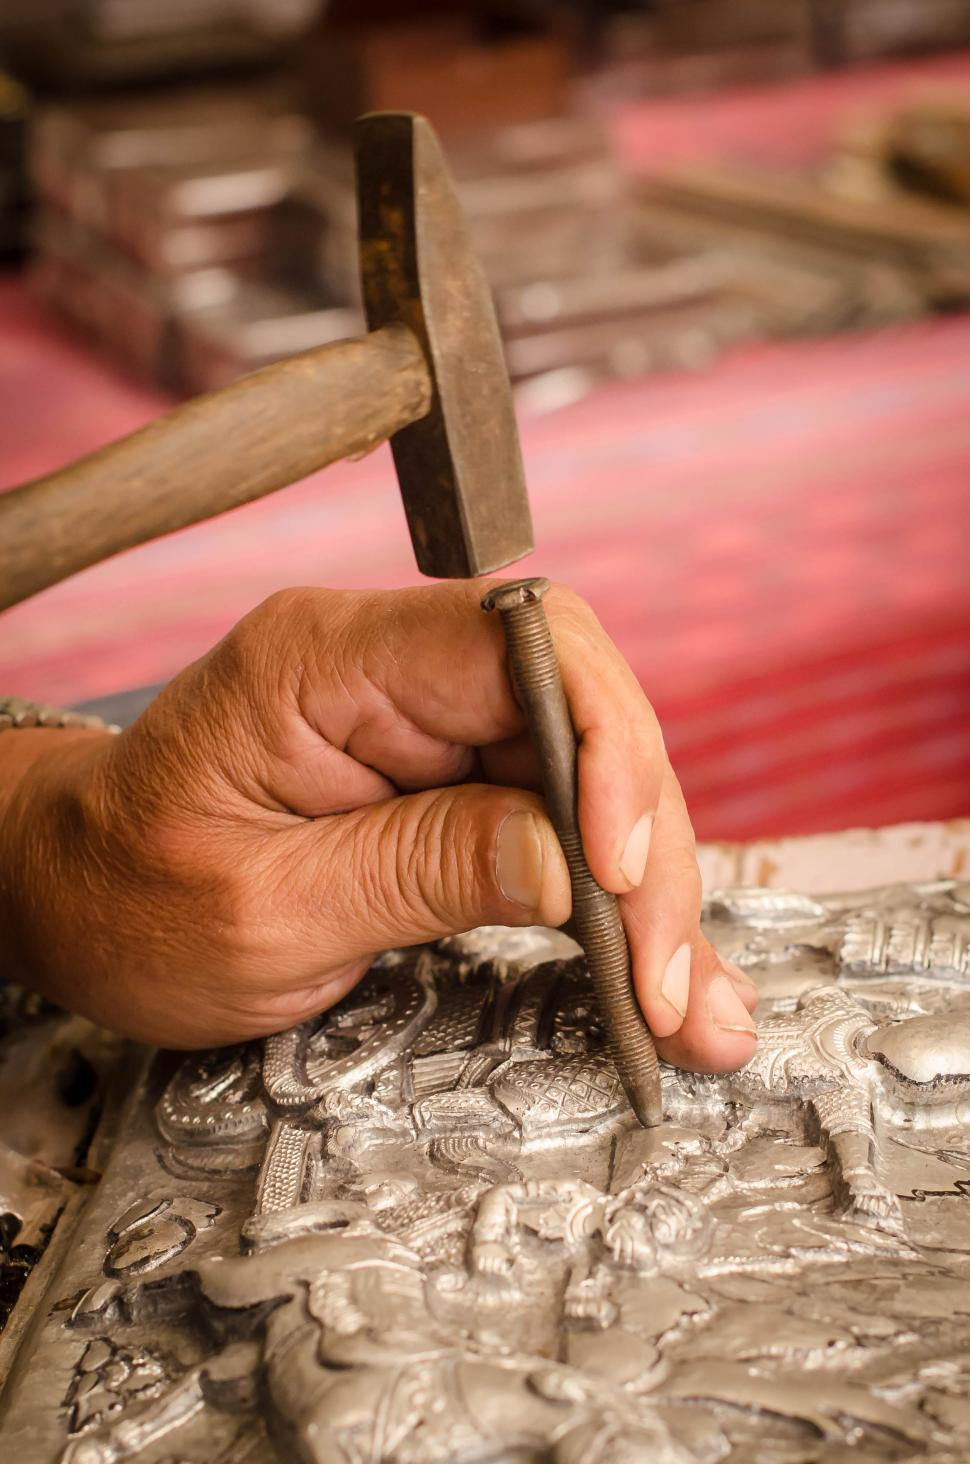 Download Free Stock HD Photo of Hand carving on silver  Online